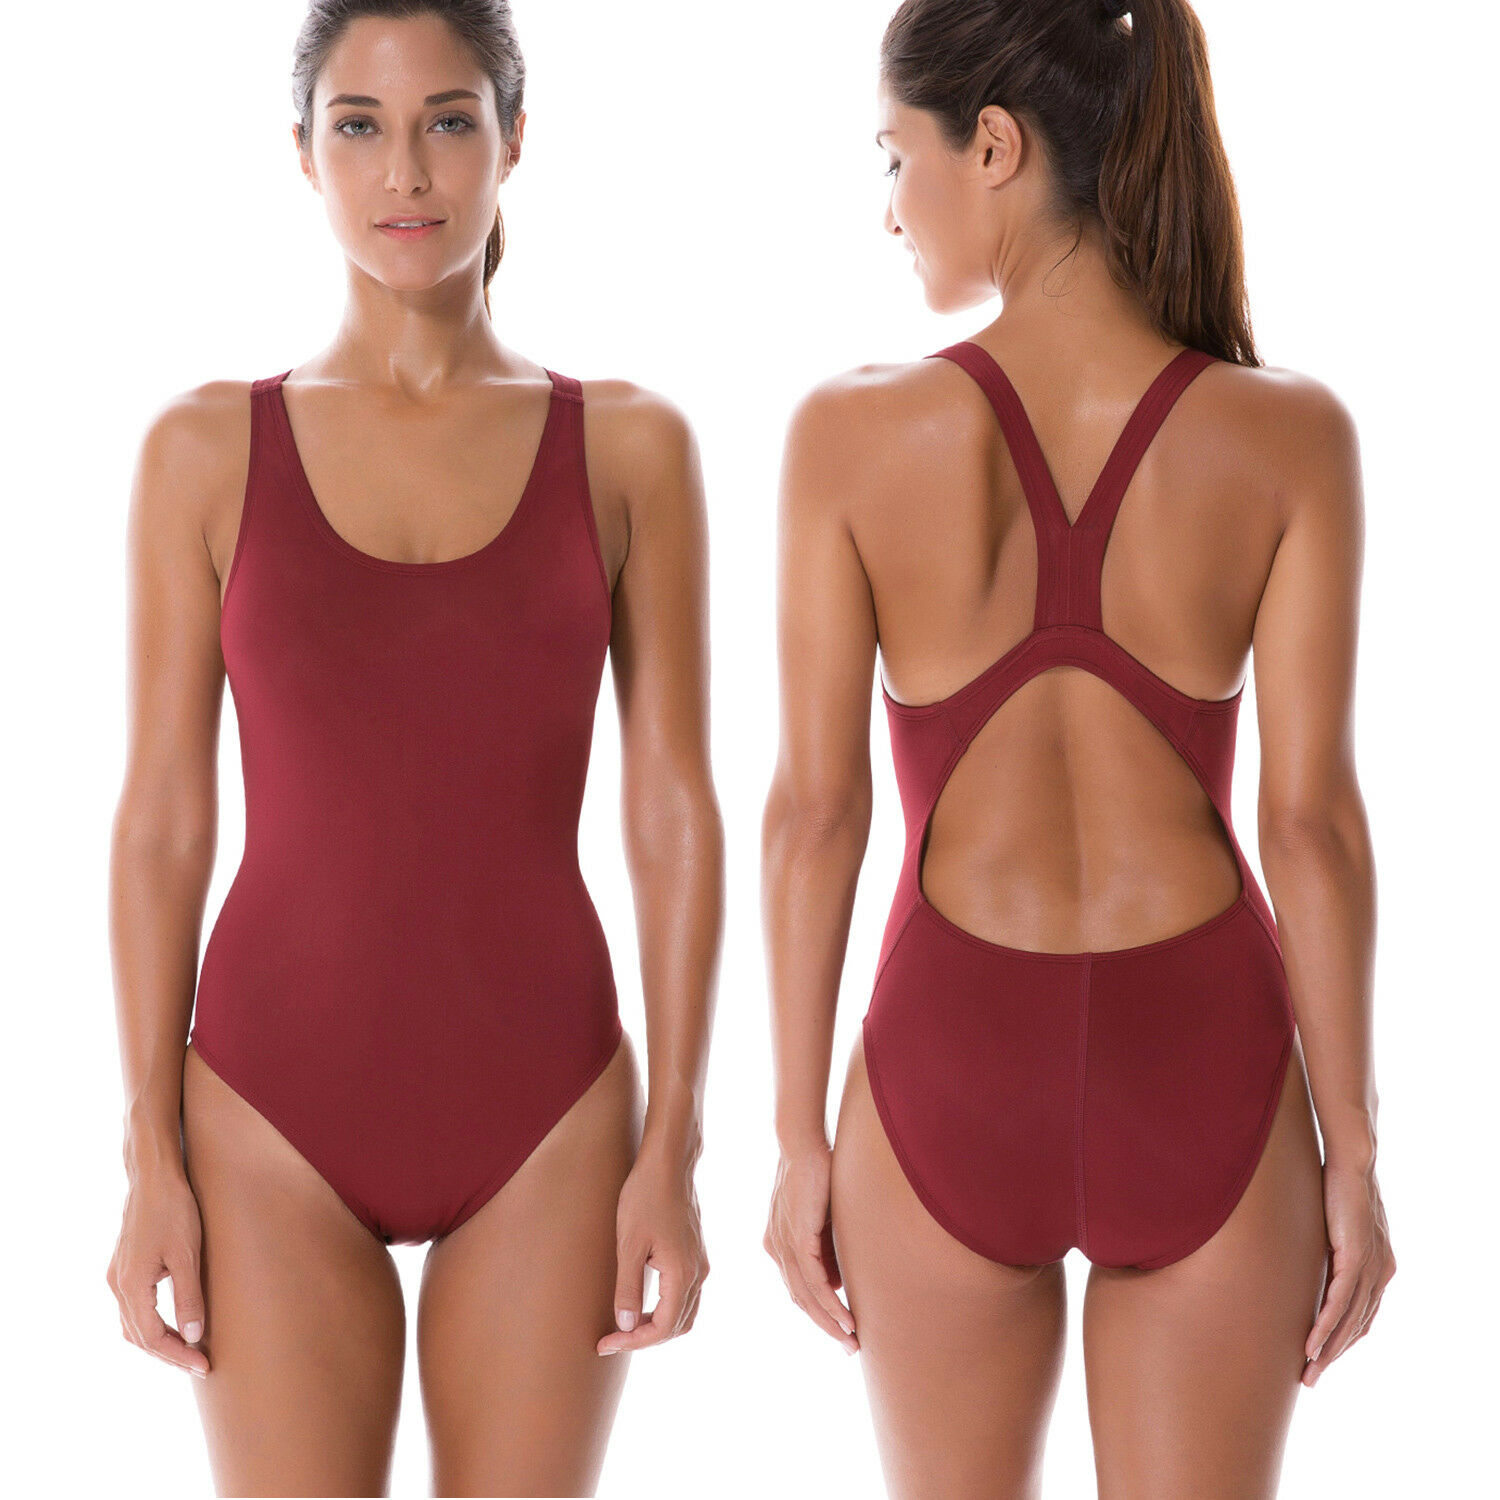 SYROKAN Womens Printed High Neck Maillot Athletic Training One Piece Swimsuit